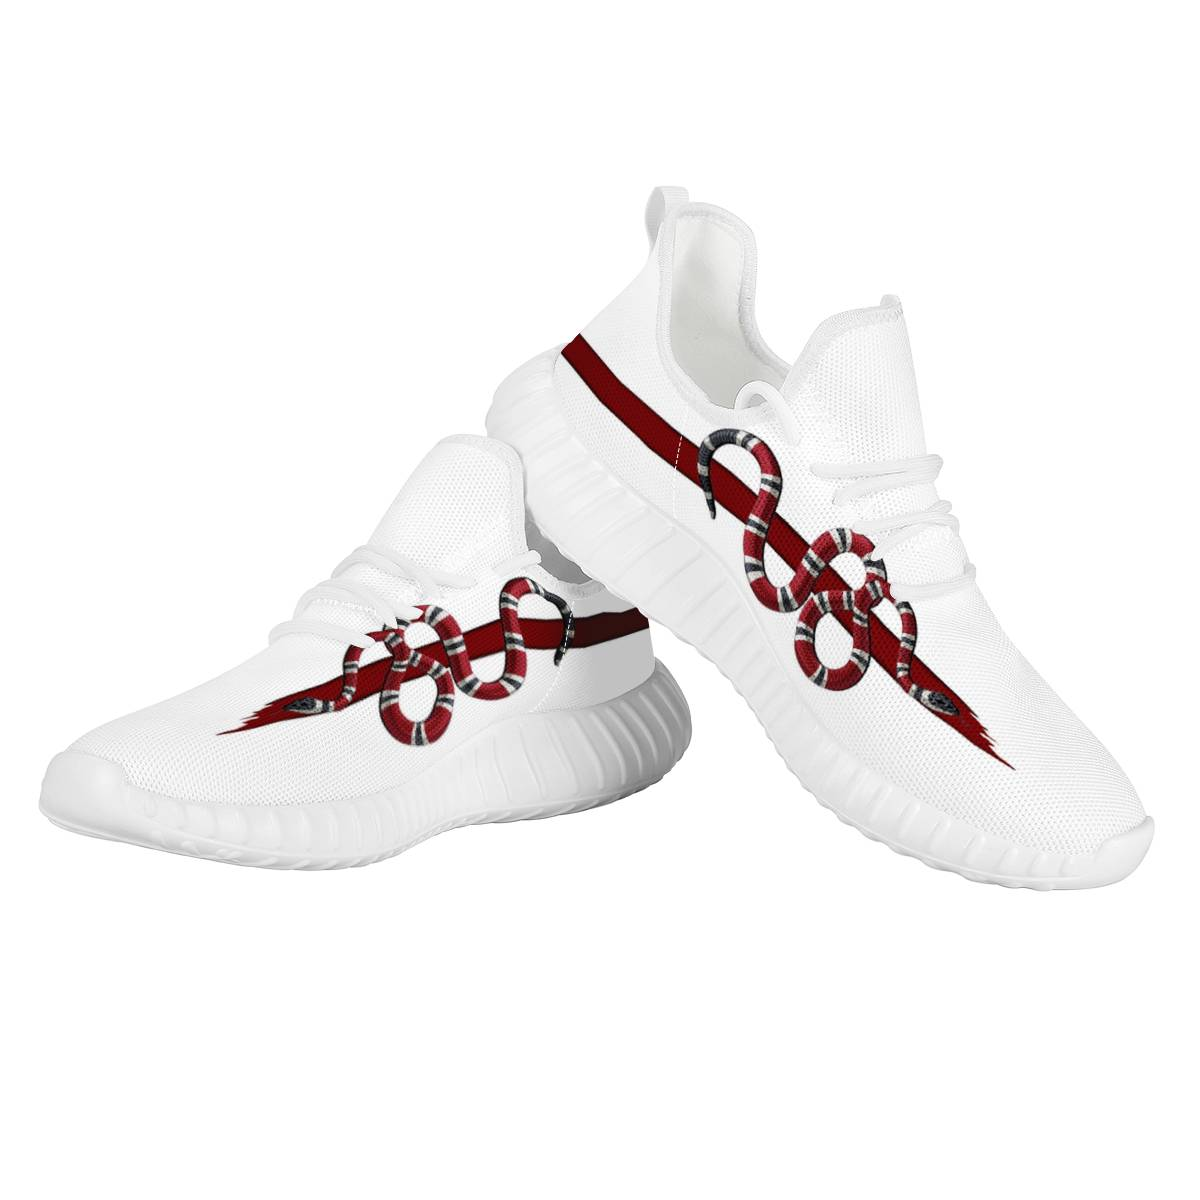 Men's Arizona Diamondbacks Mesh Knit Sneakers/Shoes 001